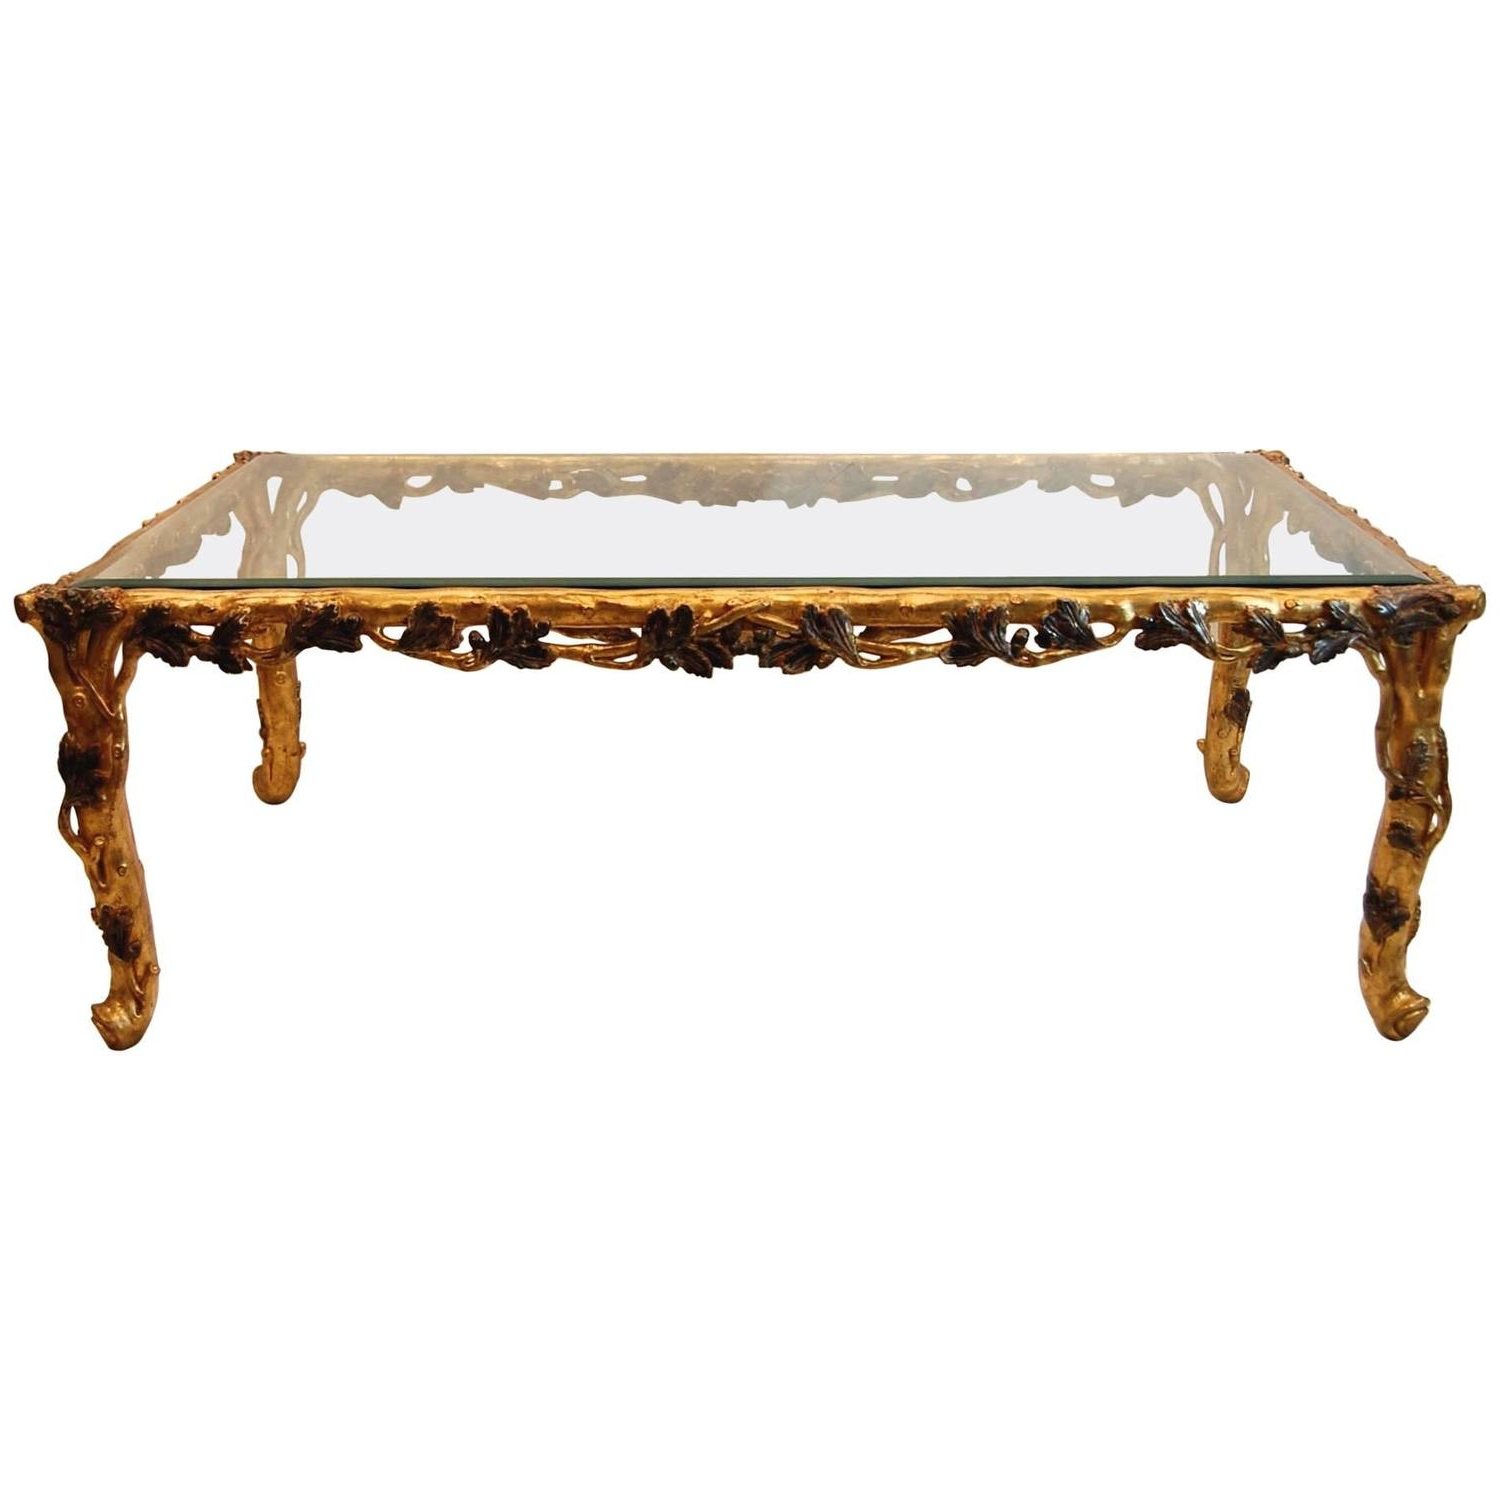 Gold Leaf Coffee And Cocktail Tables – 95 For Sale At 1Stdibs For Trendy Gold Leaf Collection Coffee Tables (Gallery 4 of 20)